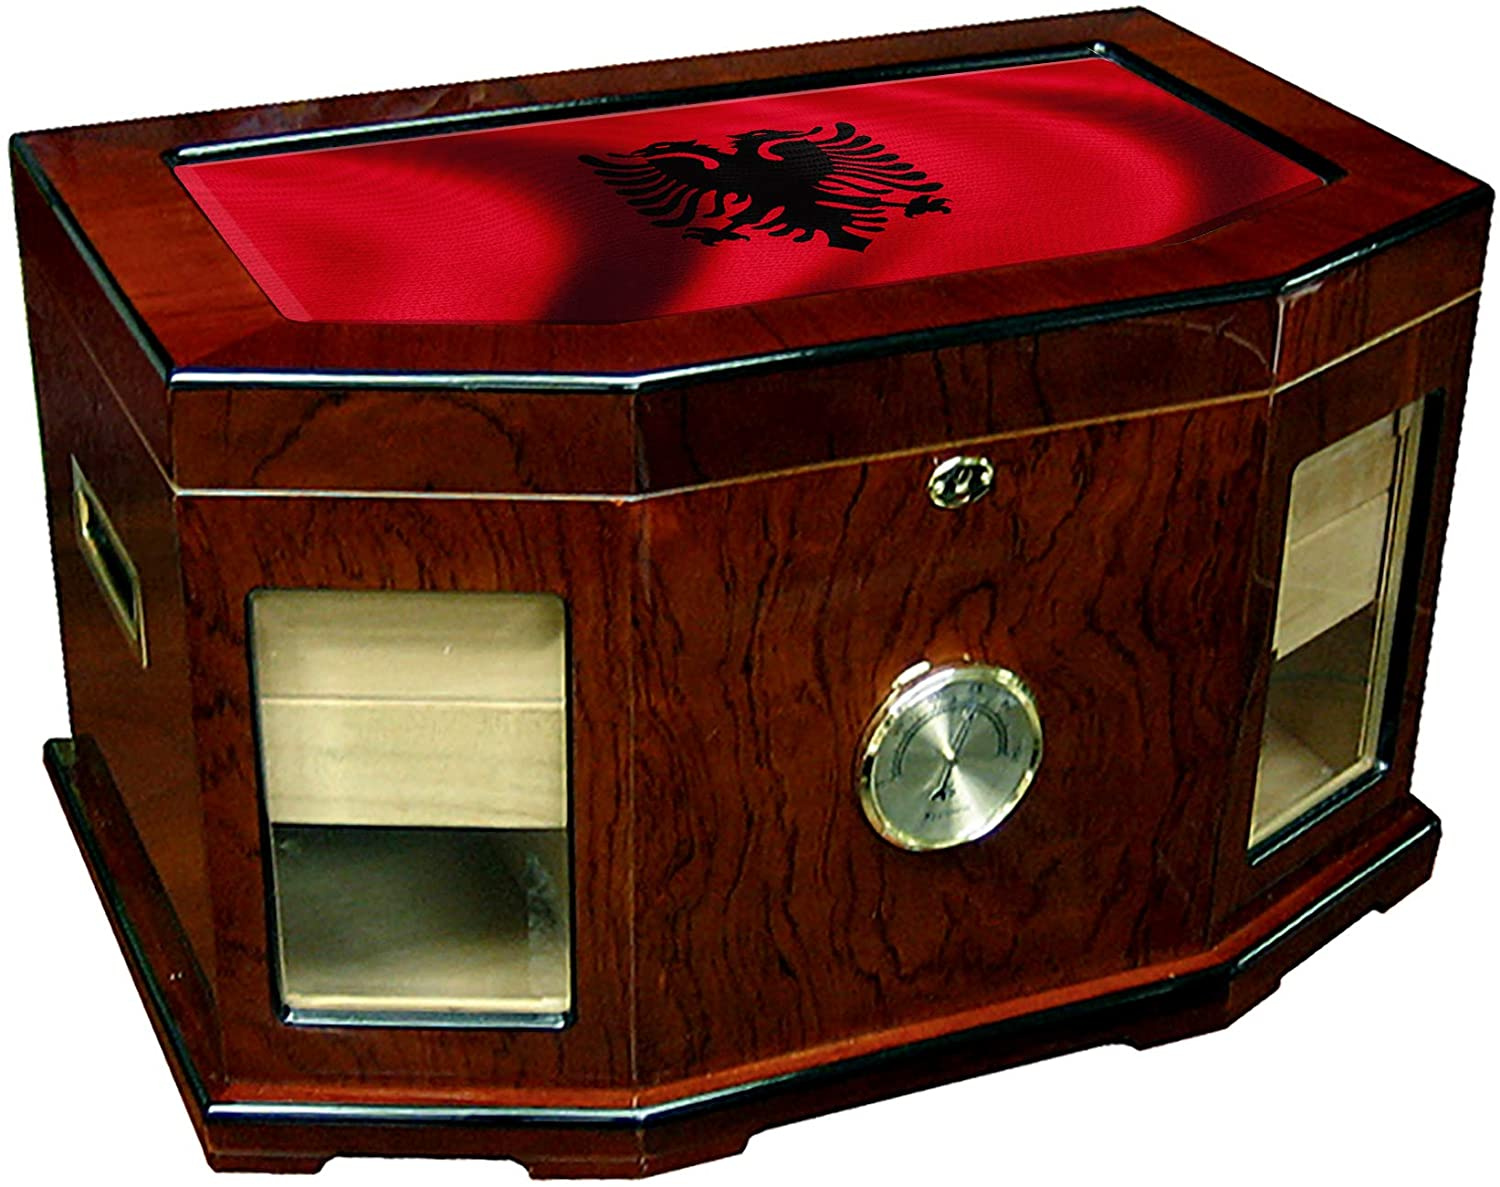 Large Premium Desktop Humidor - Glass Top - Flag of Albania (Albanian) - Waves Design - 300 Cigar Capacity - Cedar Lined with Two humidifiers & Large Front Mounted Hygrometer.